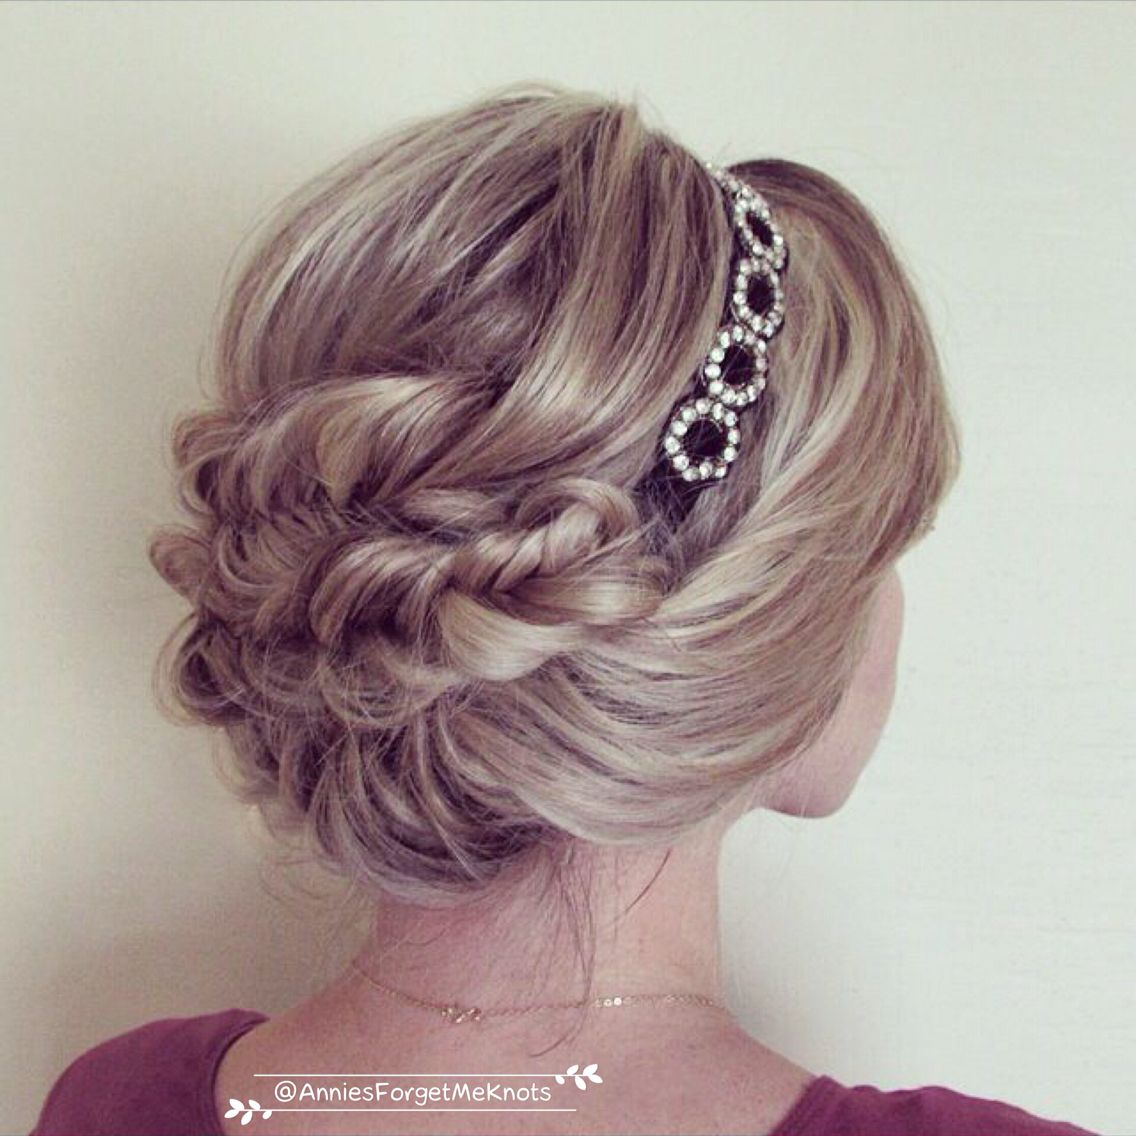 How to headband updo and fishtail braids i need to get a cute